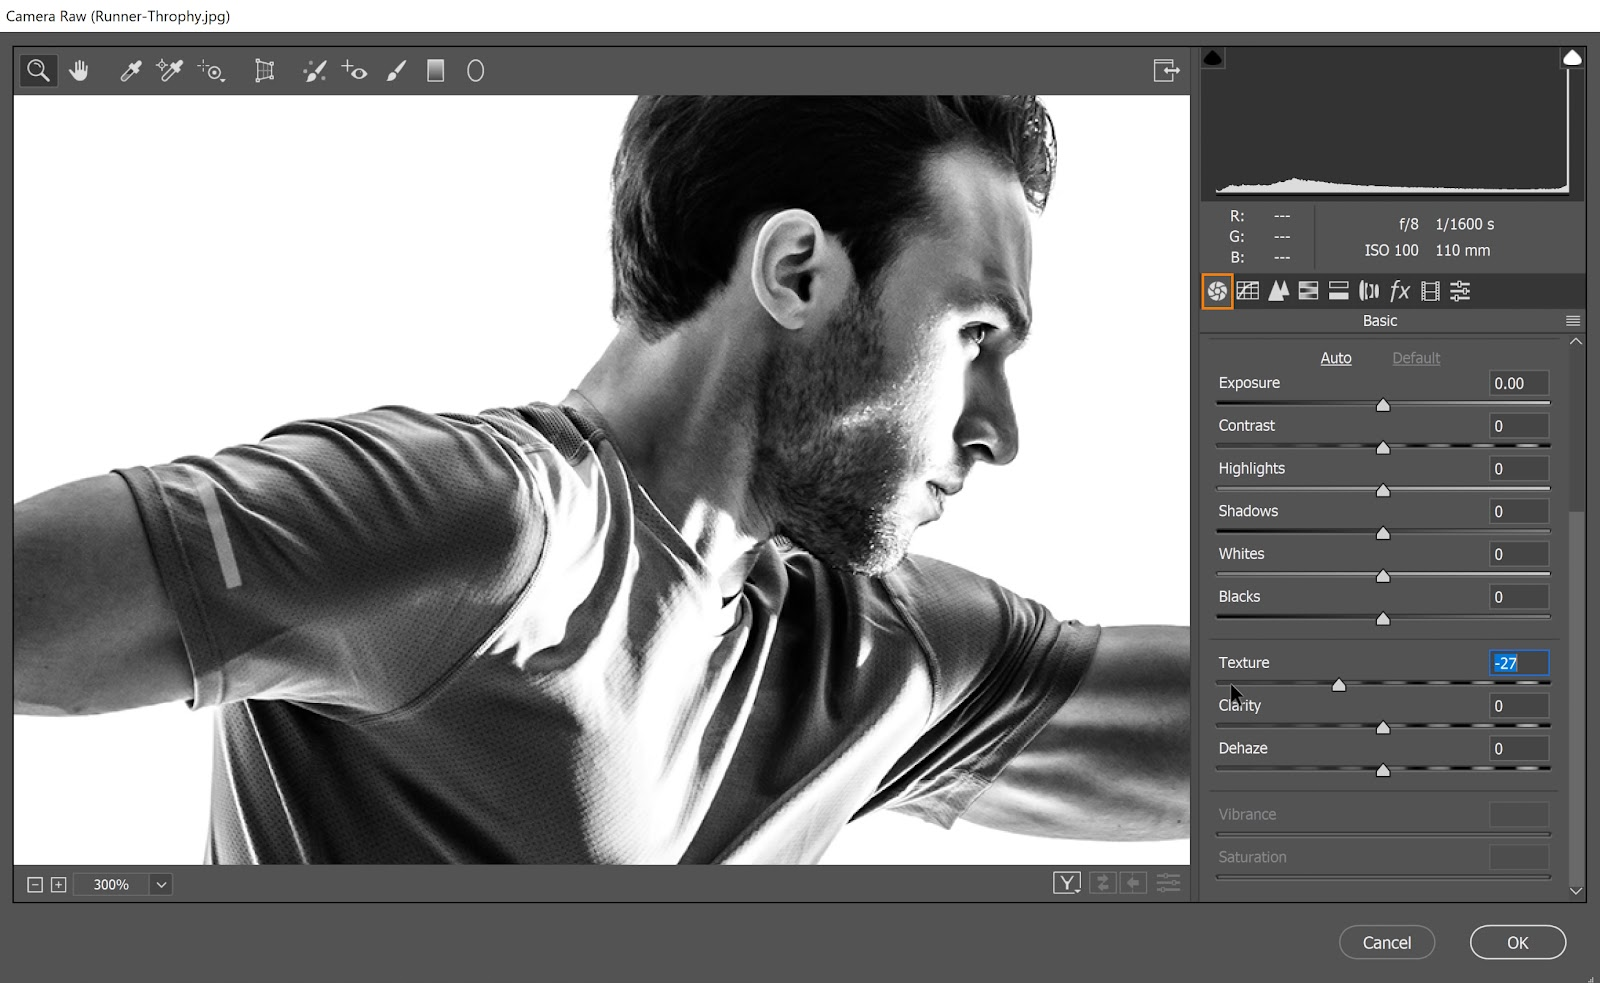 On the Basic tab, reduce the texture by bringing the slider all the way down to smoothen the textures of the image